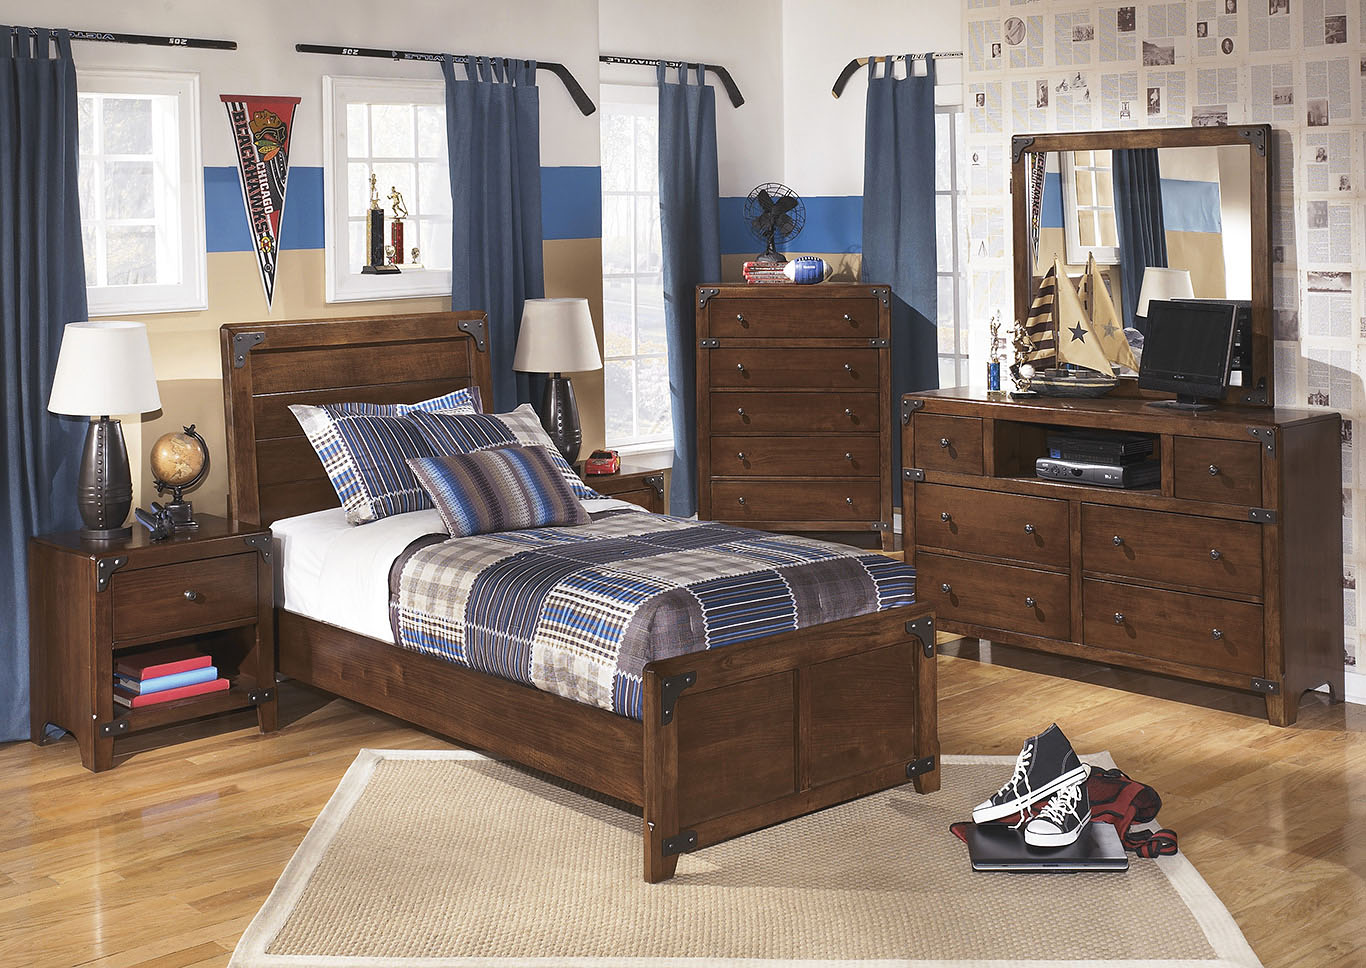 Delburne Full Panel Bed w/Dresser, Mirror, Chest & Nightstand,Signature Design By Ashley